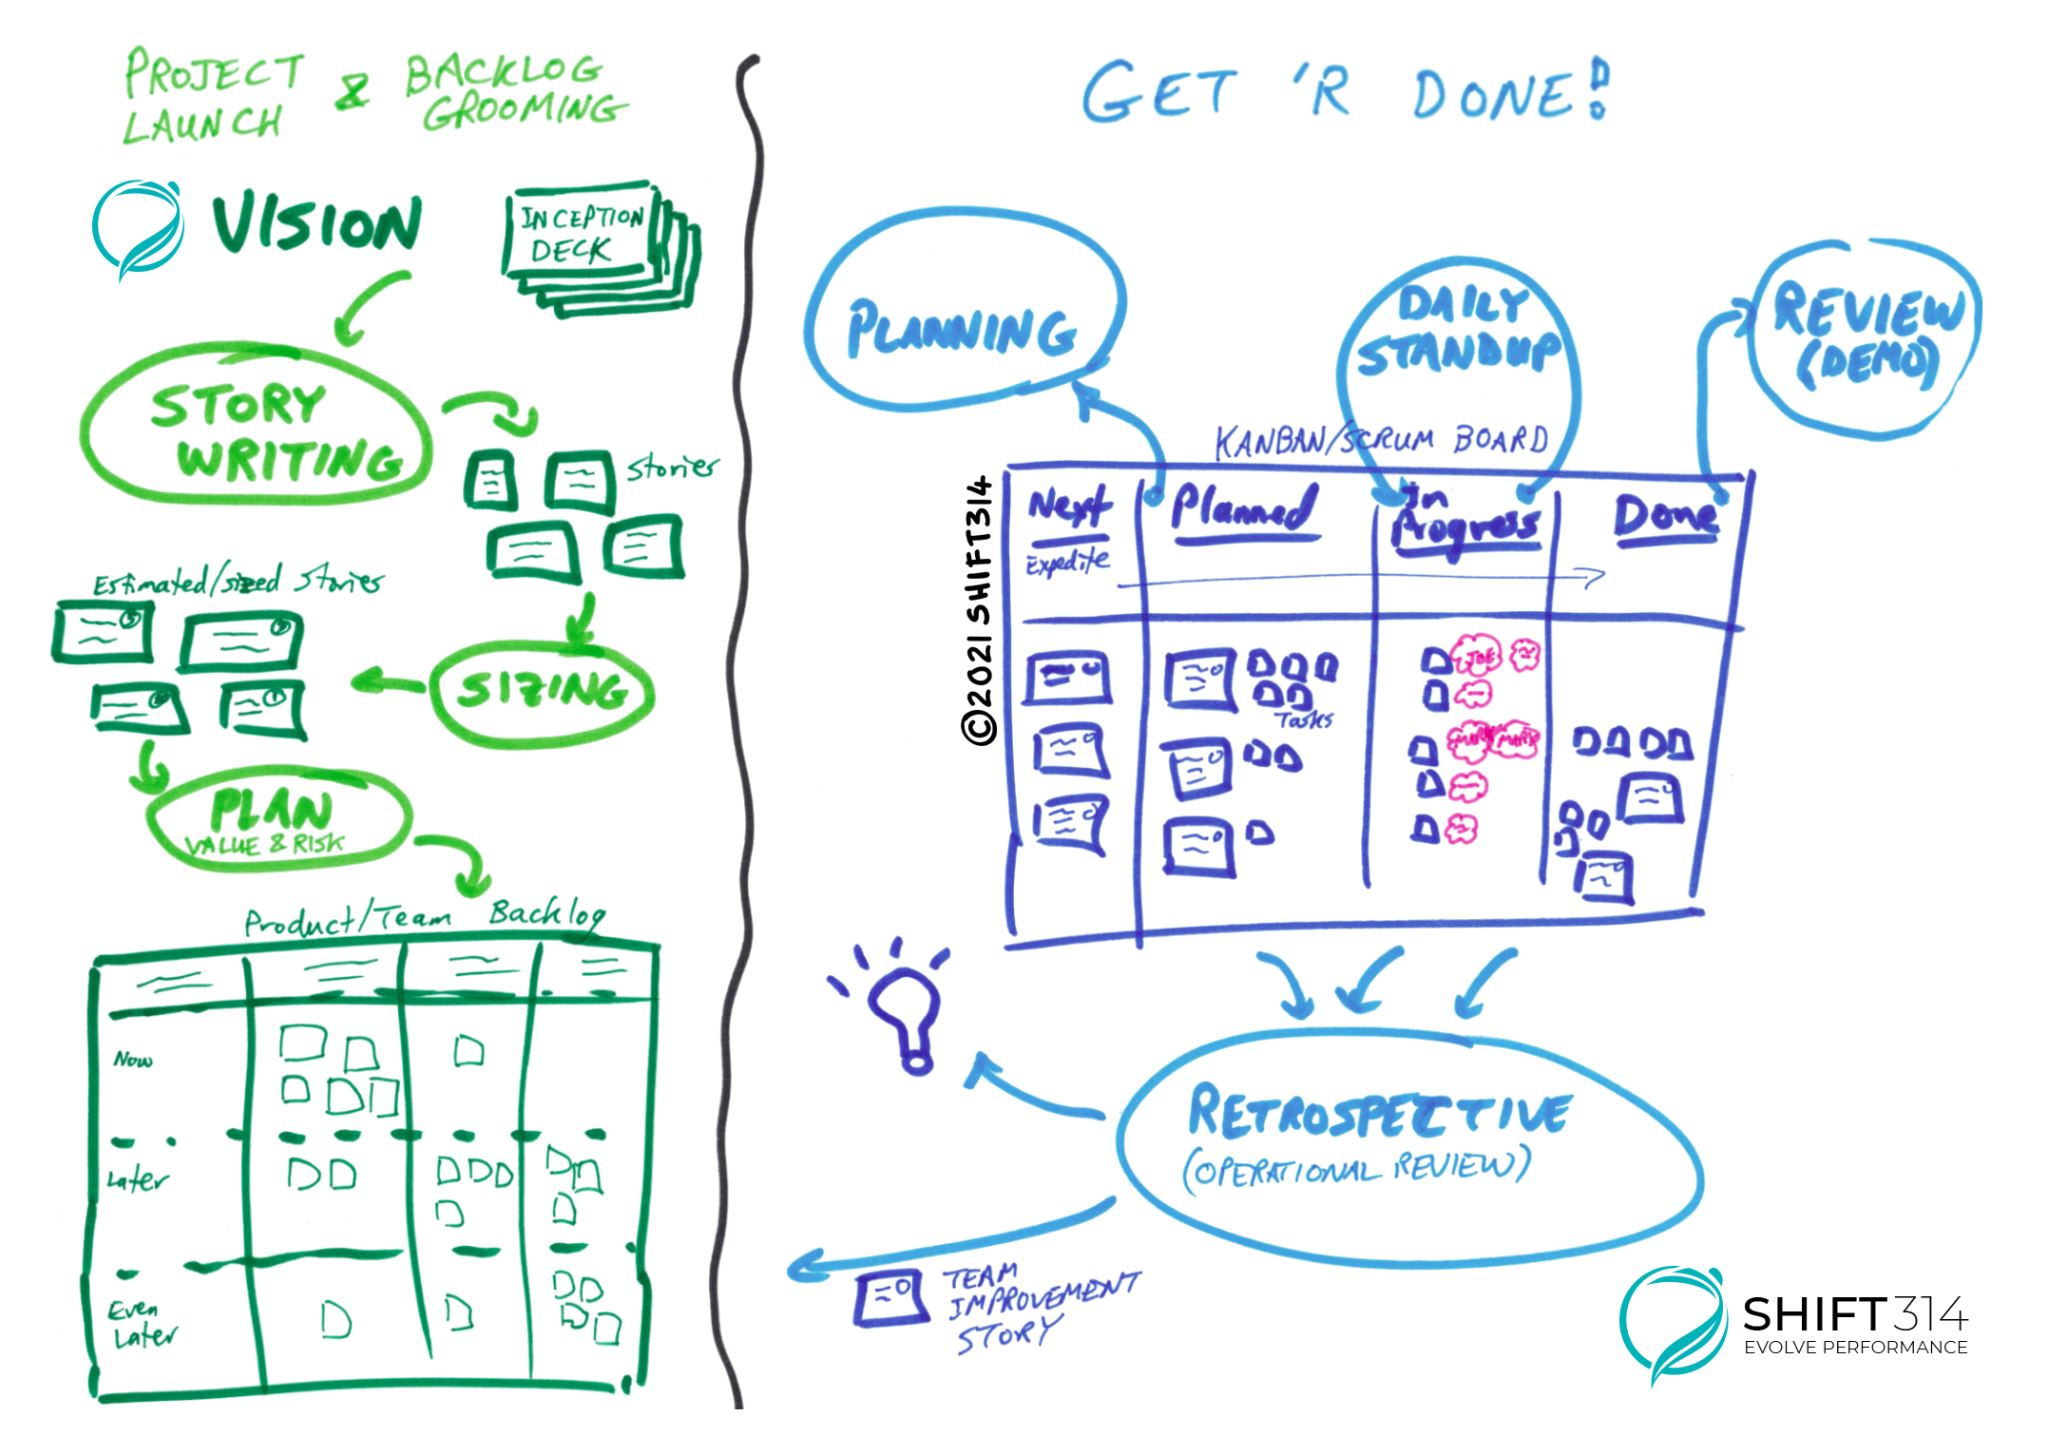 """What is agile workflow graphic - divided into two sections: Vision and """"get 'r done"""". Vision includes story writing, sizing, plan; Get 'r Done includes planning, planned, in progress, and done. Below is """"retrospective"""""""